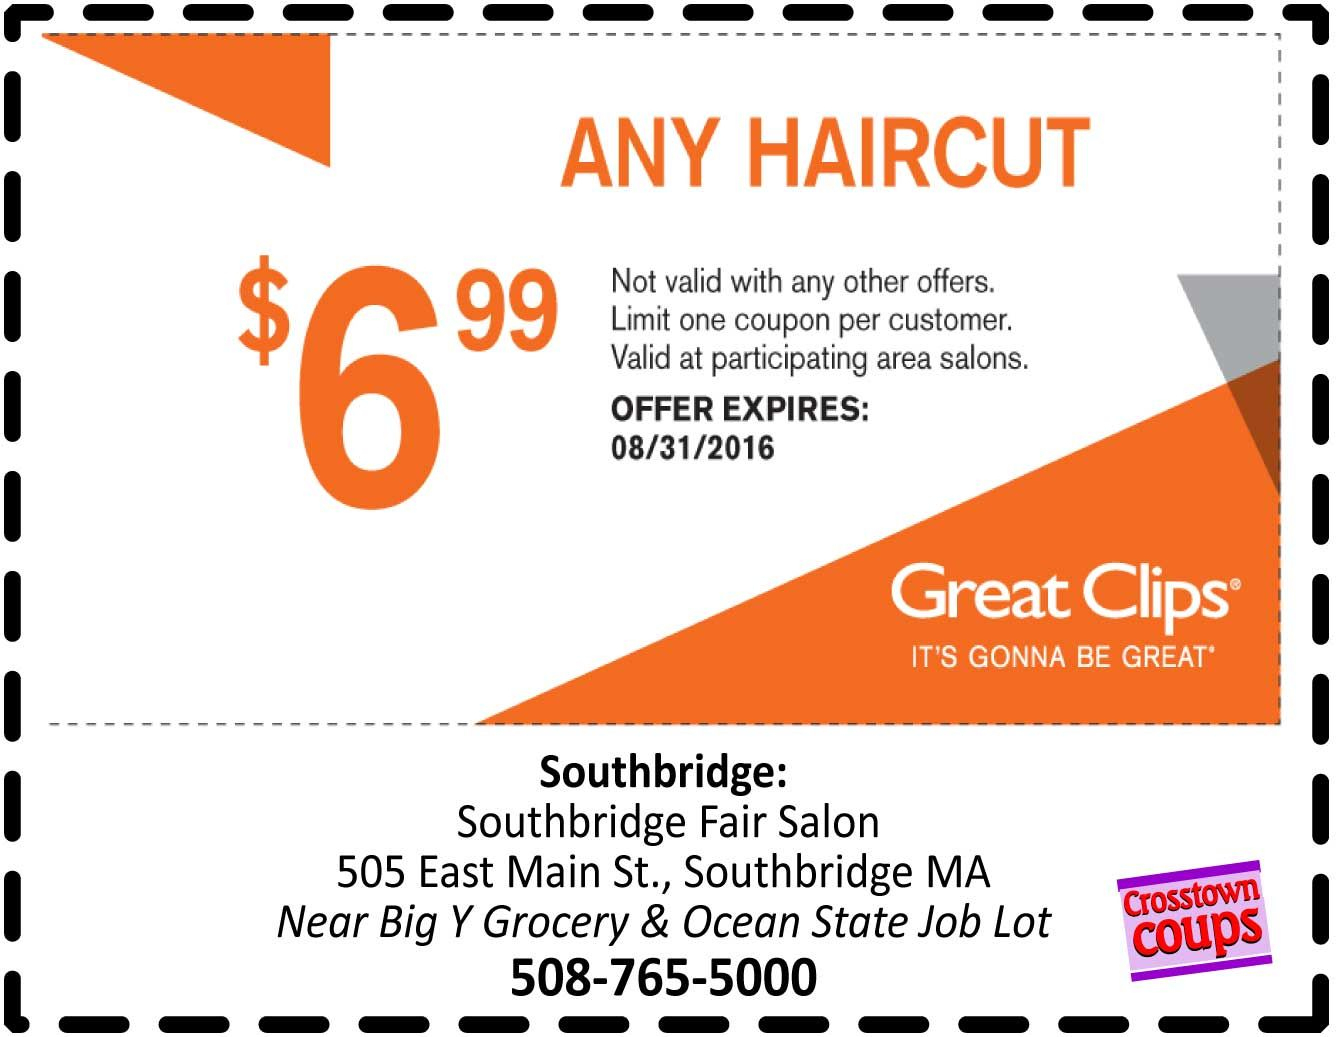 27 Great Clips Free Haircut Coupon | Hairstyles Ideas - Sports Clips Free Haircut Printable Coupon